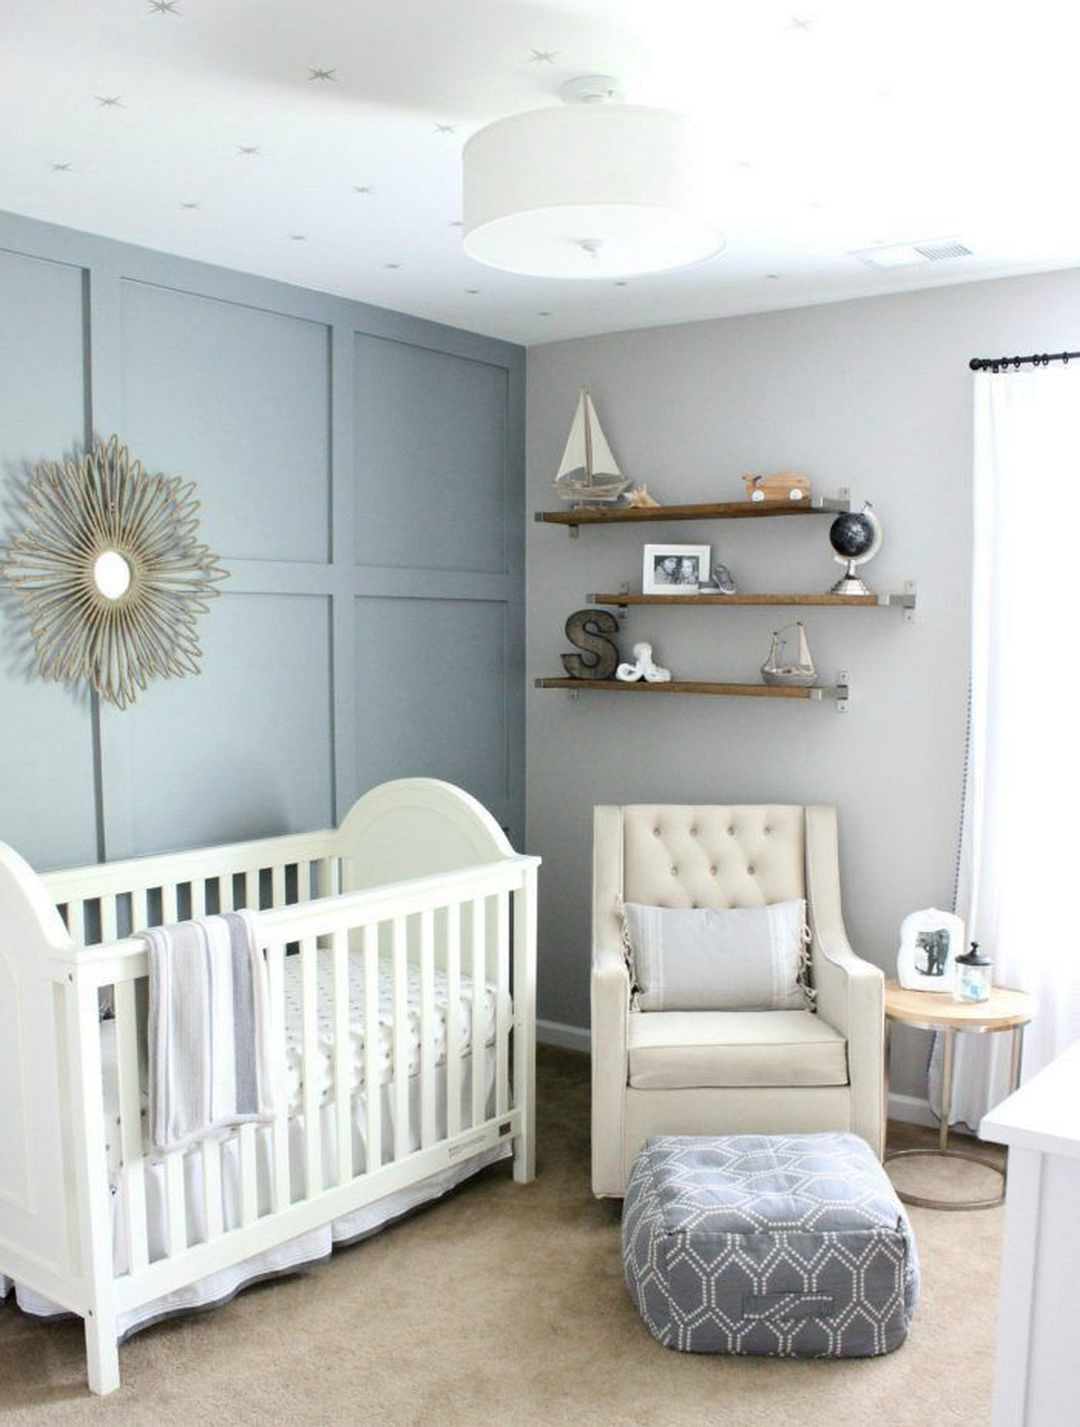 A Travel Nursery That Combines Both Nautical Inspired Elements Using Muted Shades Of Blue And Gray Natural Wood Tones Mixed Metals